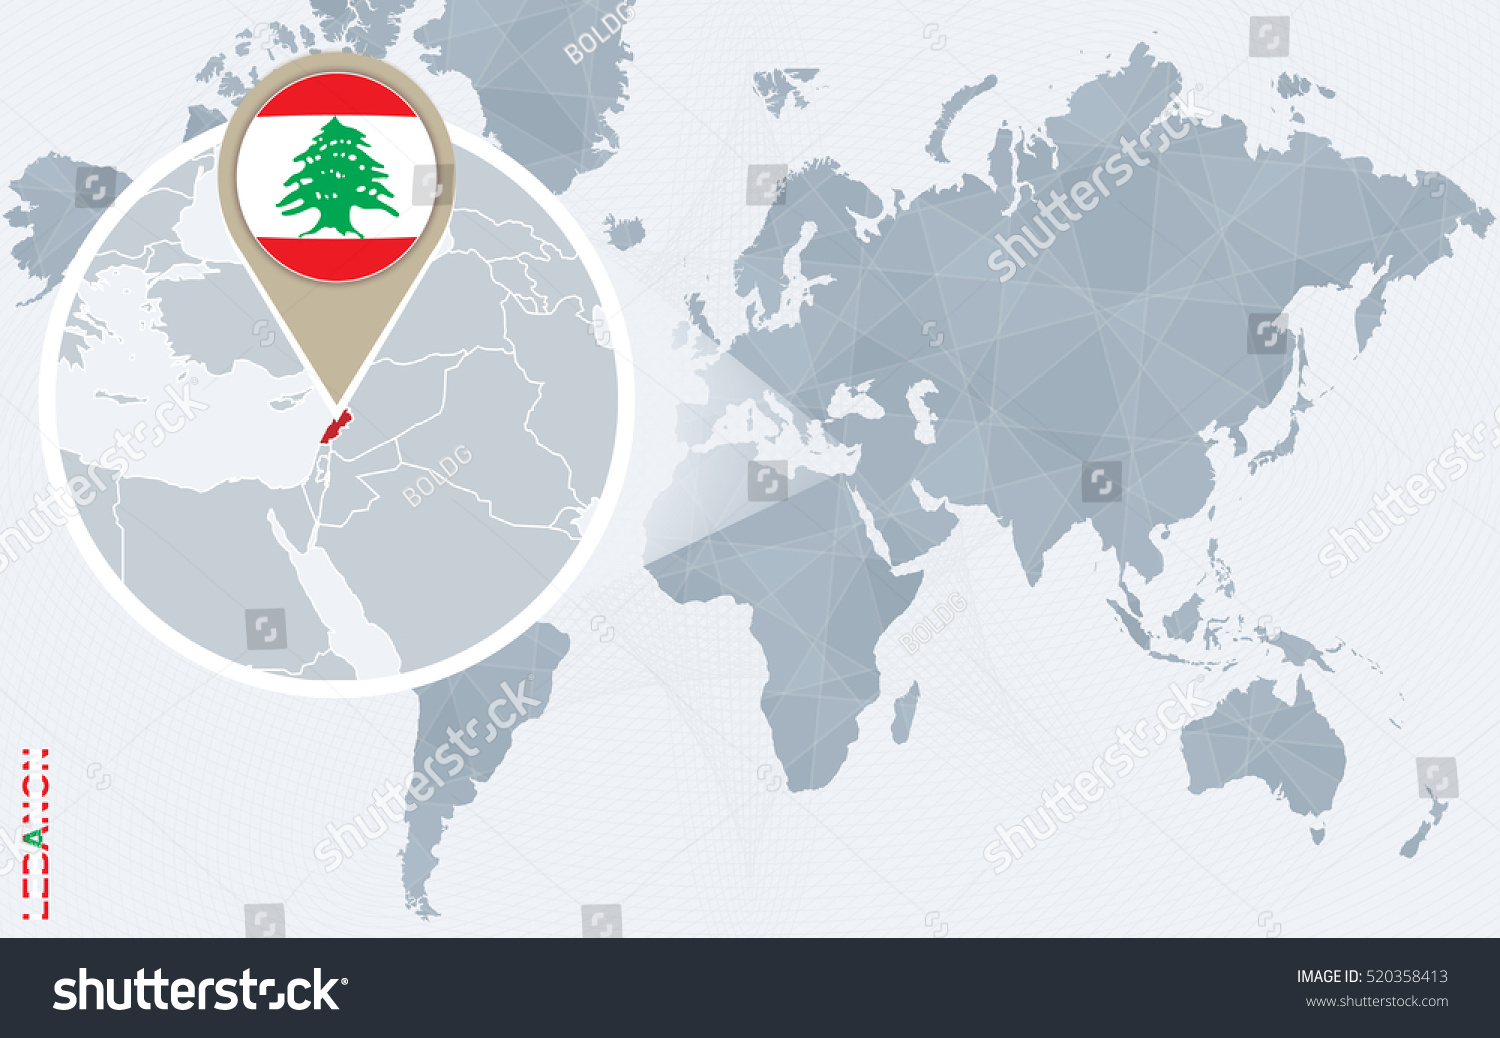 Abstract blue world map magnified lebanon stock illustration abstract blue world map with magnified lebanon lebanon flag and map raster copy sciox Gallery